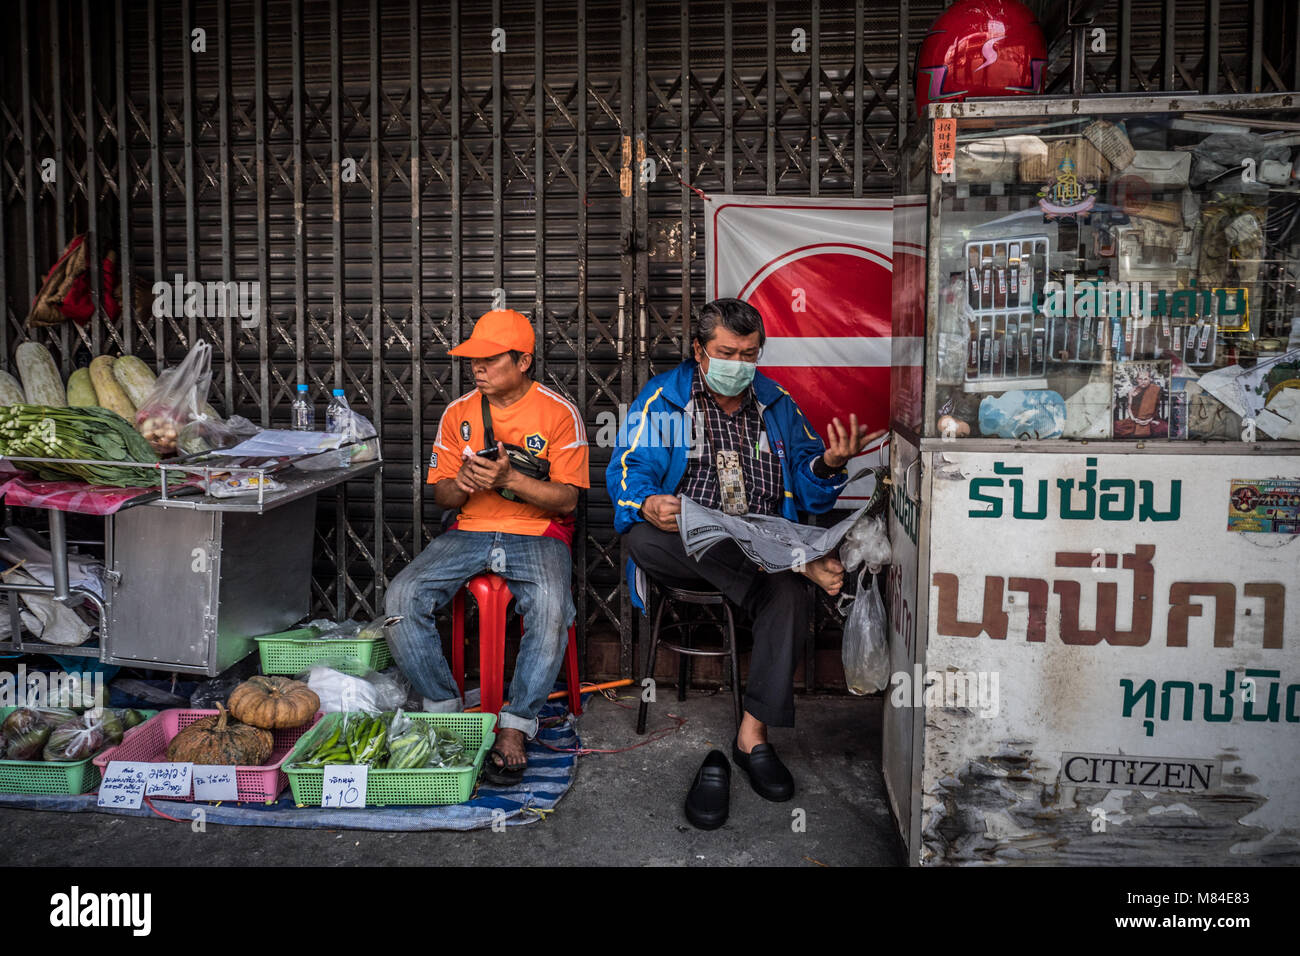 Two male market traders sat by their busines stalls, Chiang Mai, Thailand, South East Asia - Stock Image